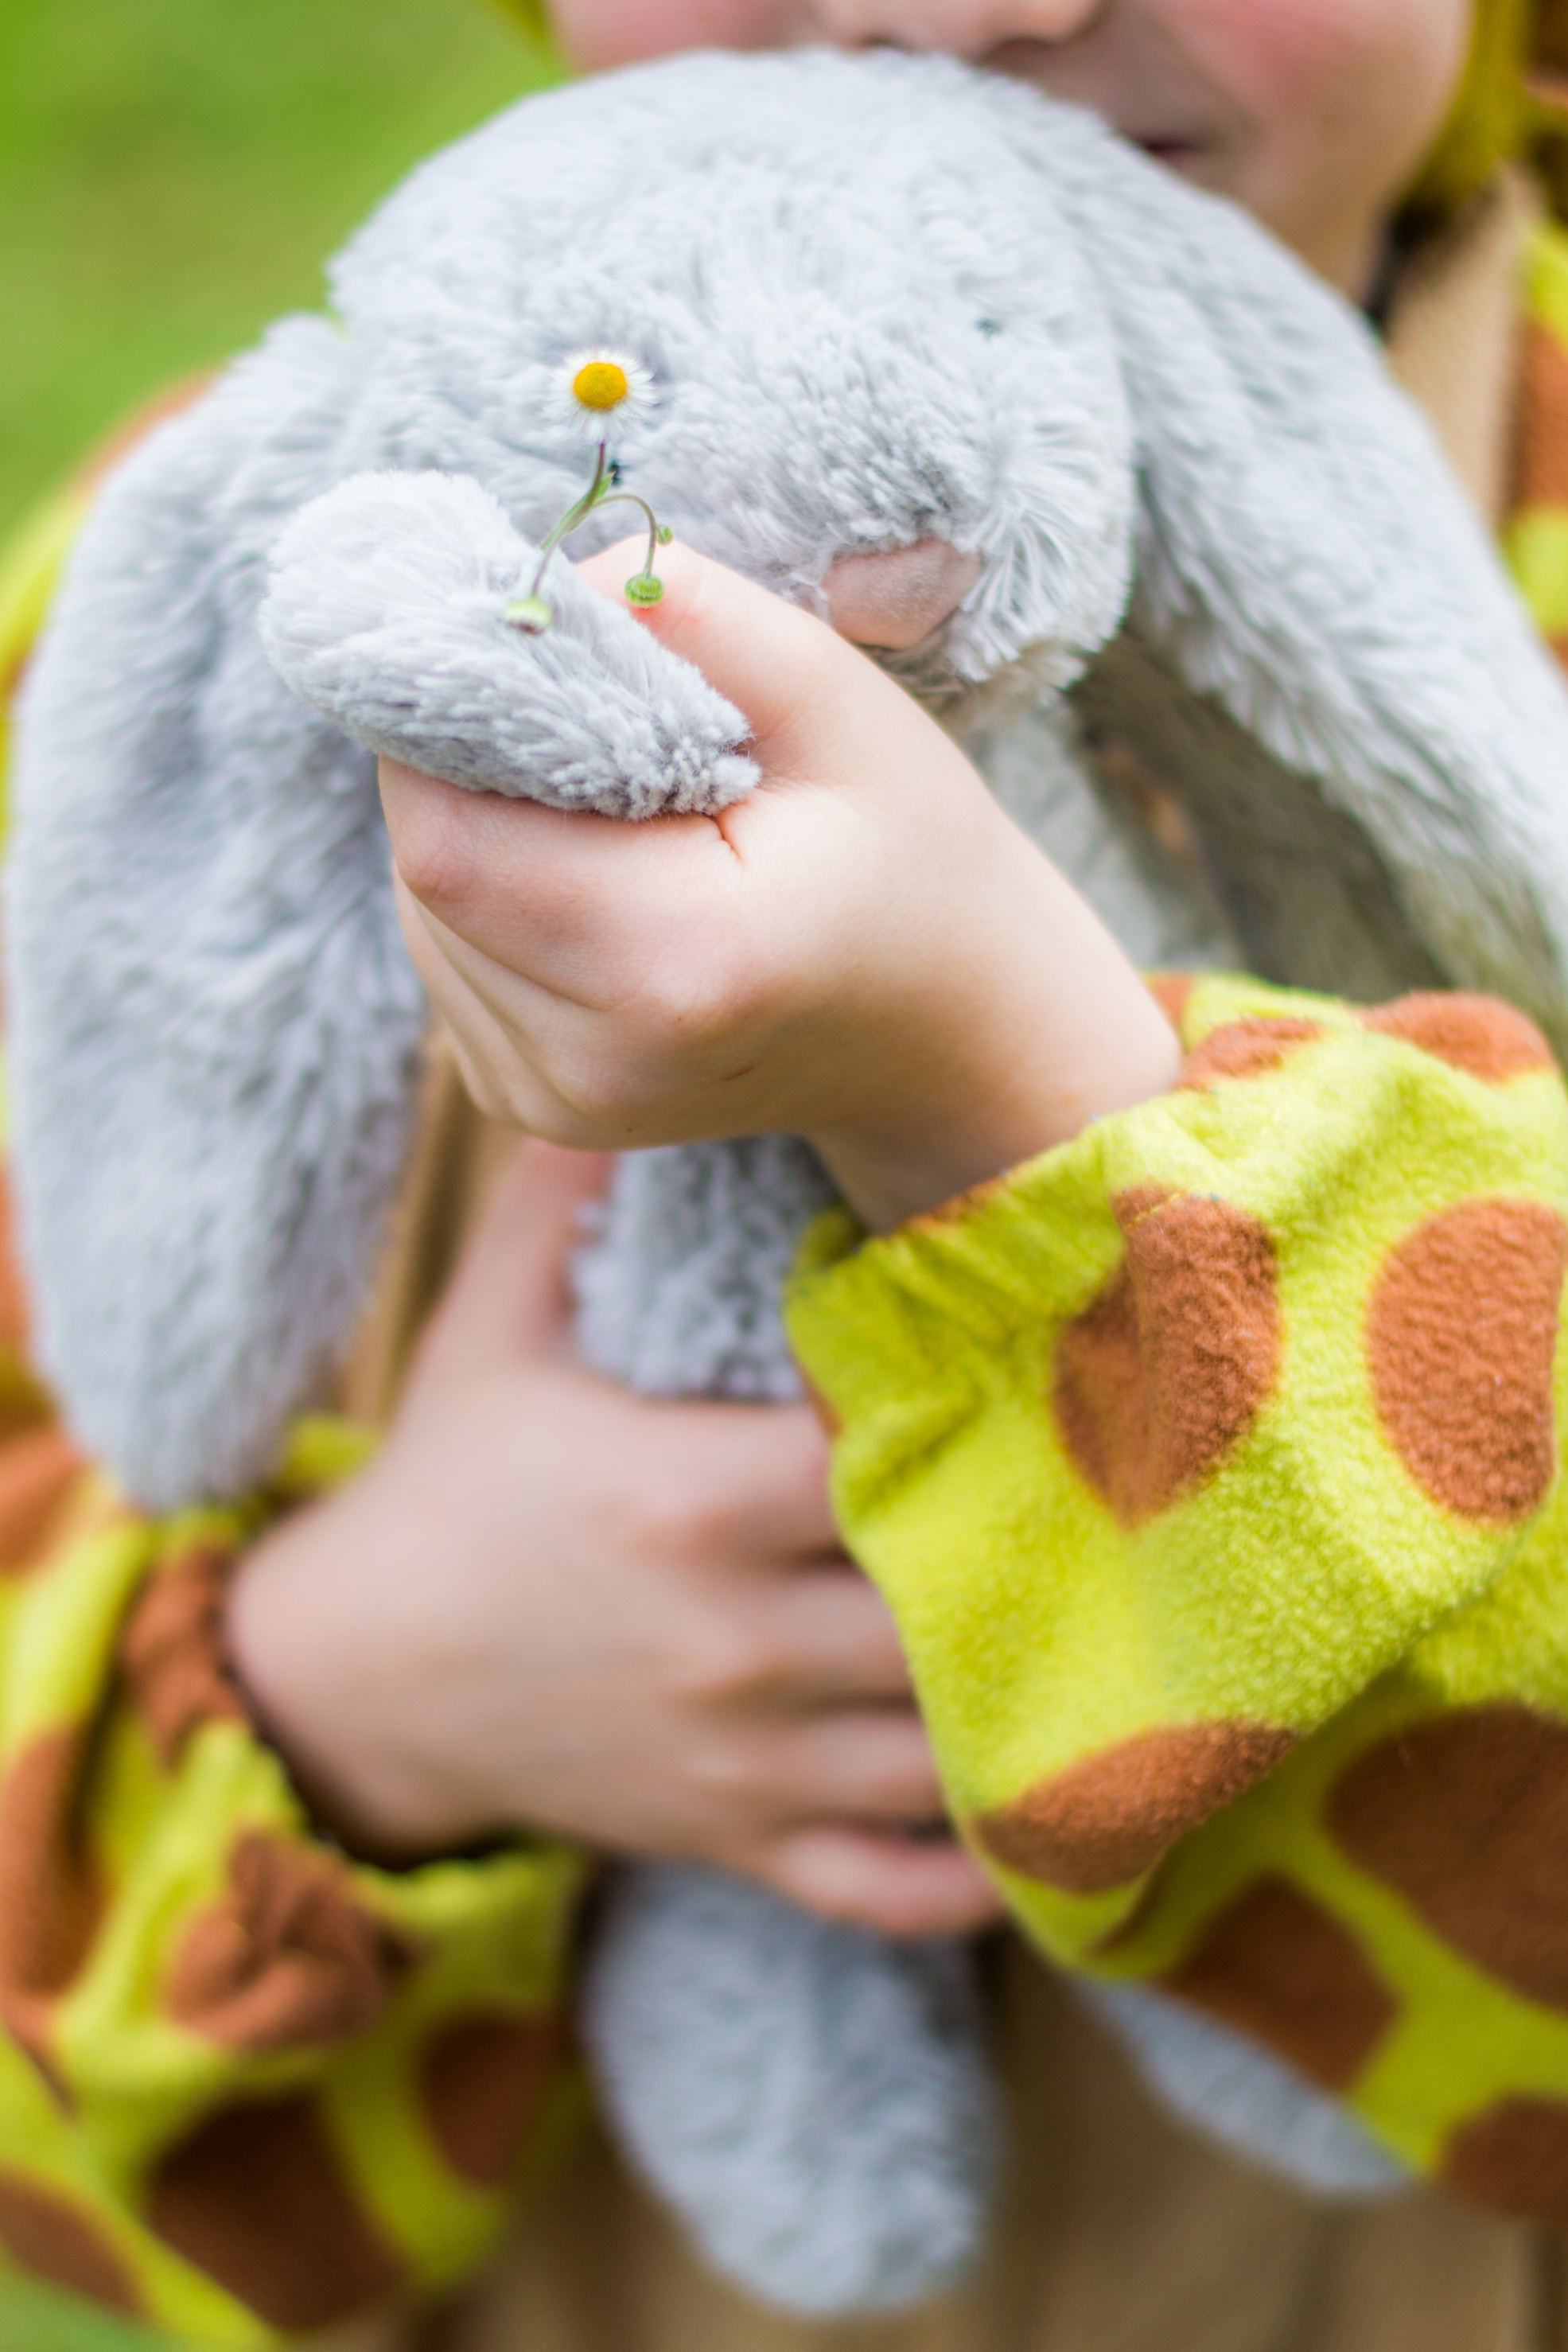 stuffed animals promote social skills